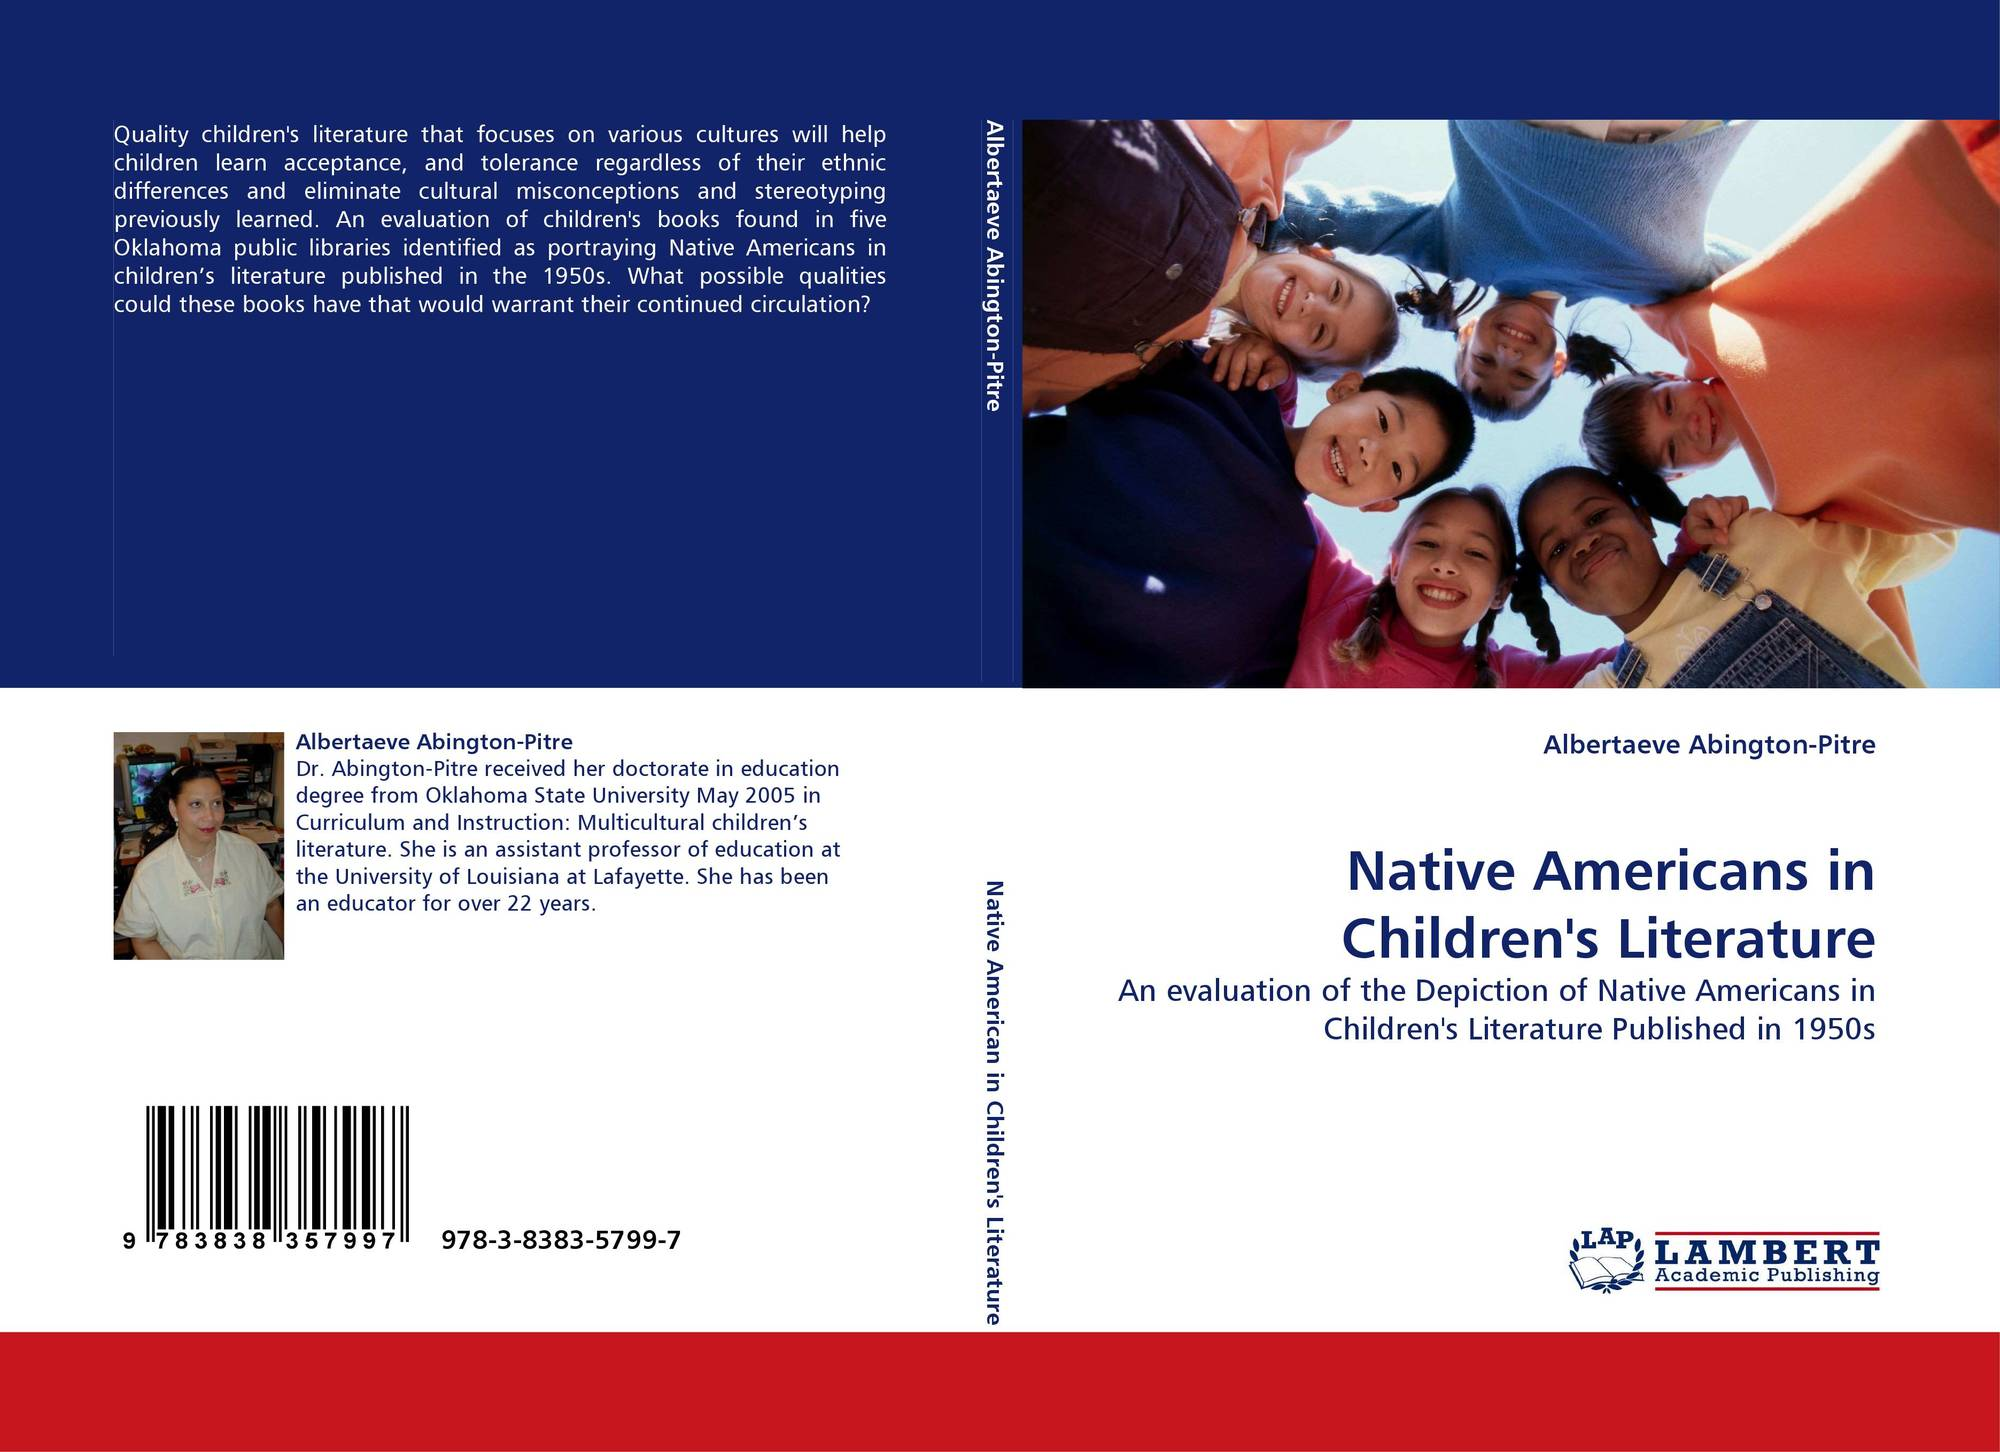 the major role of native american literature in american education Can literature written by native americans who use western styles and forms such as the short story or the novel be considered native literature is there something about native literature which remains somehow indian despite its form and style what real difference is there between the poetry of john.